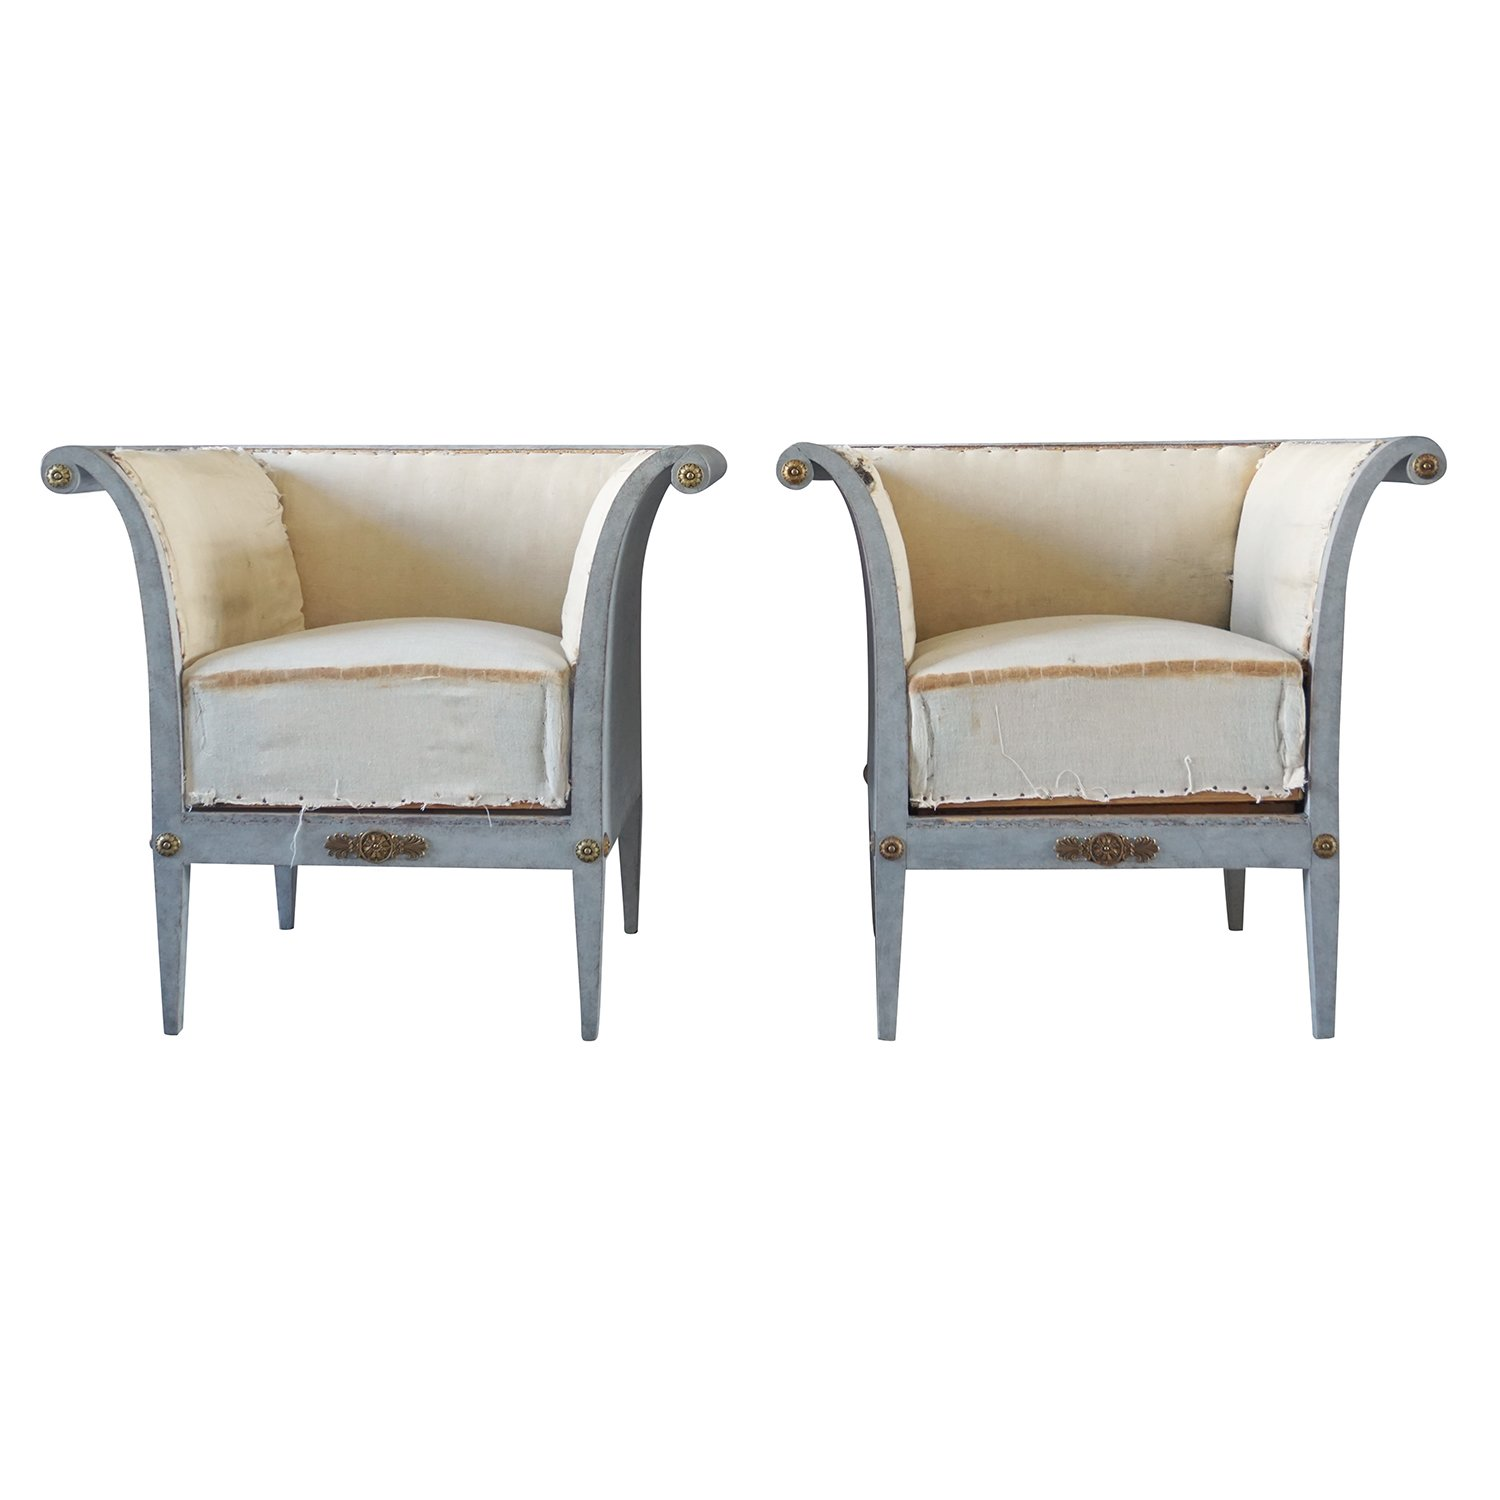 19th Century Pair of Bergères Fauteuils – Swedish Pinewood Armchairs